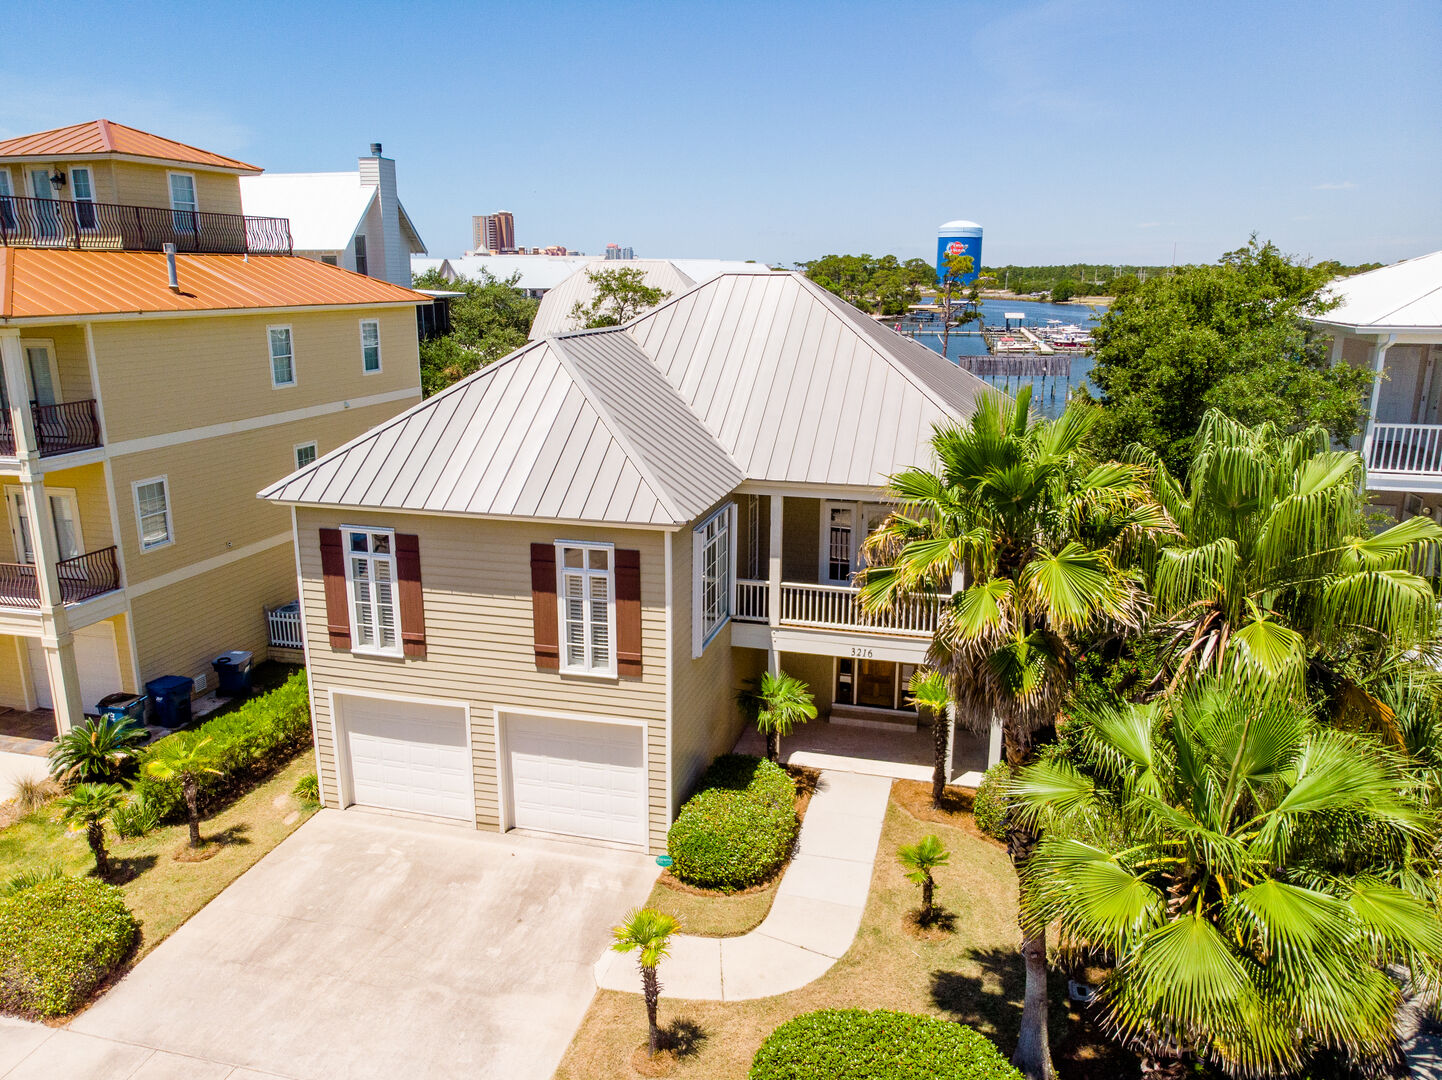 An Image of the Drive Way Leading to Orange Beach Vacation Rental.